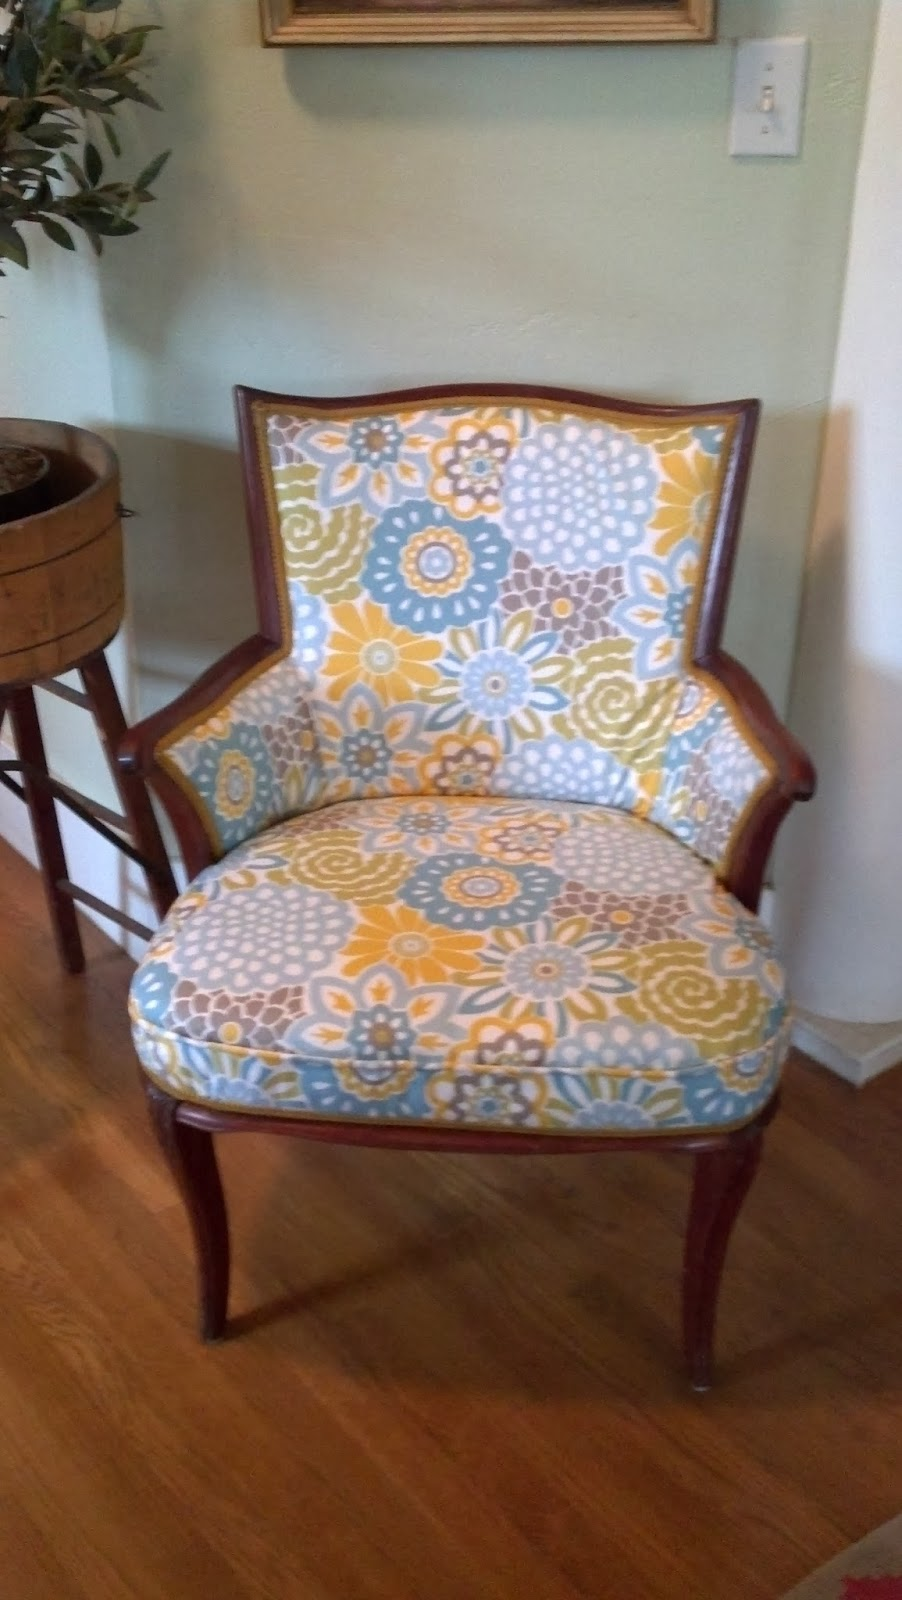 I am not good at this by any means, but it was fun to try it. I have made  slip covers before, for chairs. And took a few upholstery classes over the  ... - Windmill Farm: Upholstery Of Antique Chair